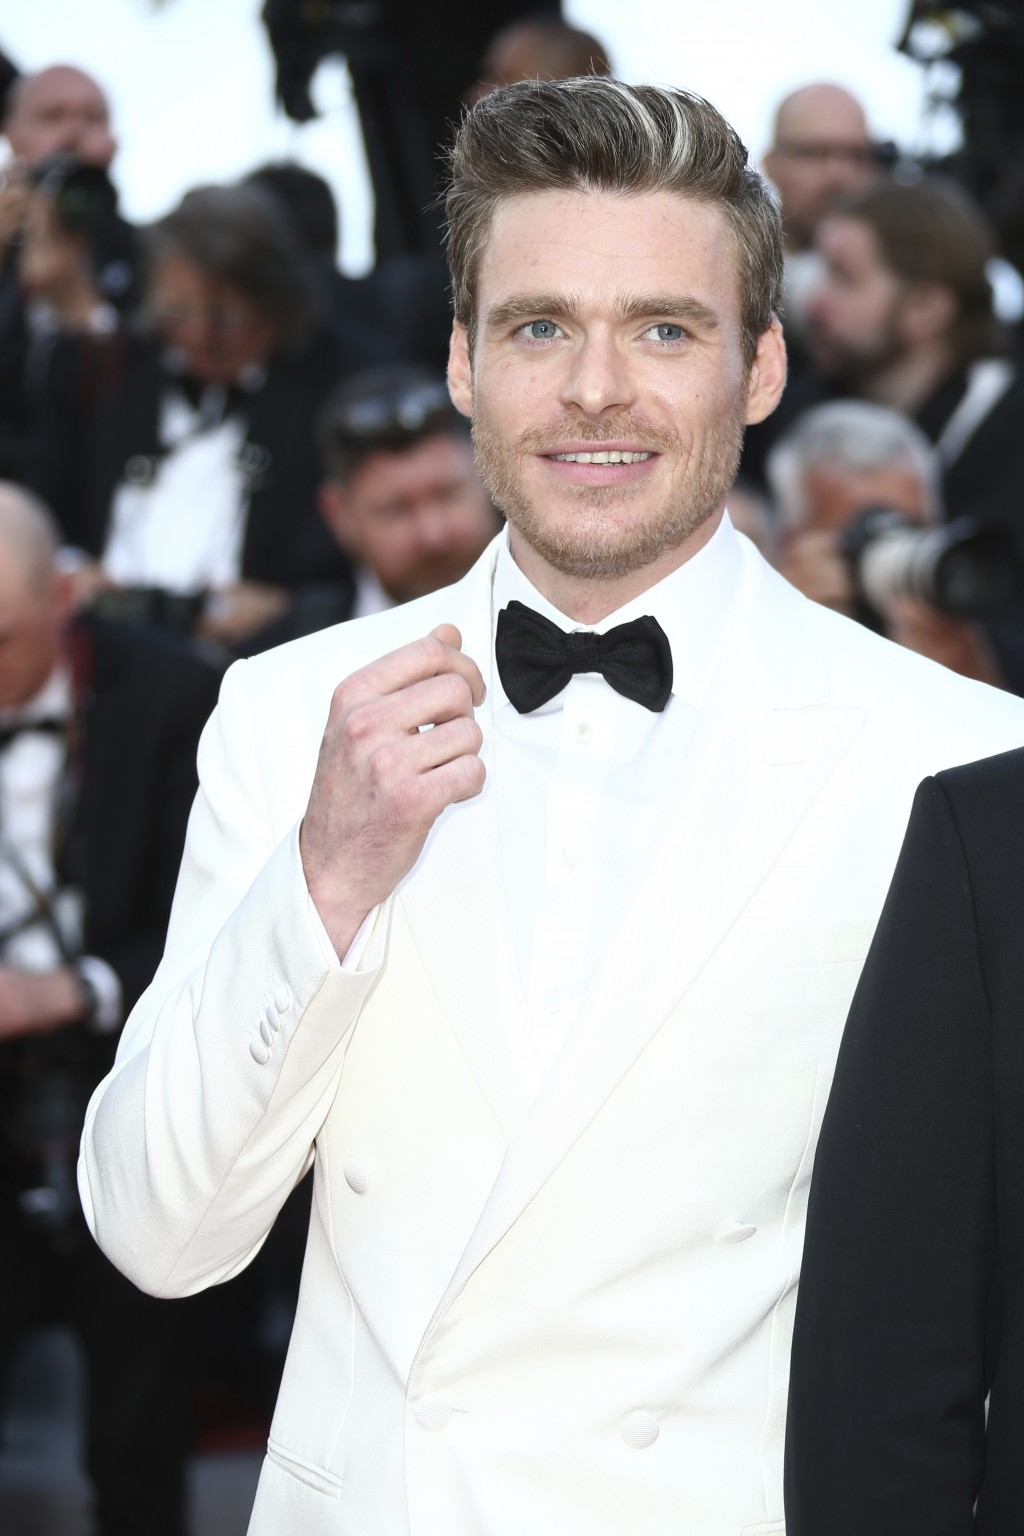 Actor Richard Madden poses for photographers upon arrival at the premiere of the film 'Rocketman' at the 72nd international film festival, Cannes, sou